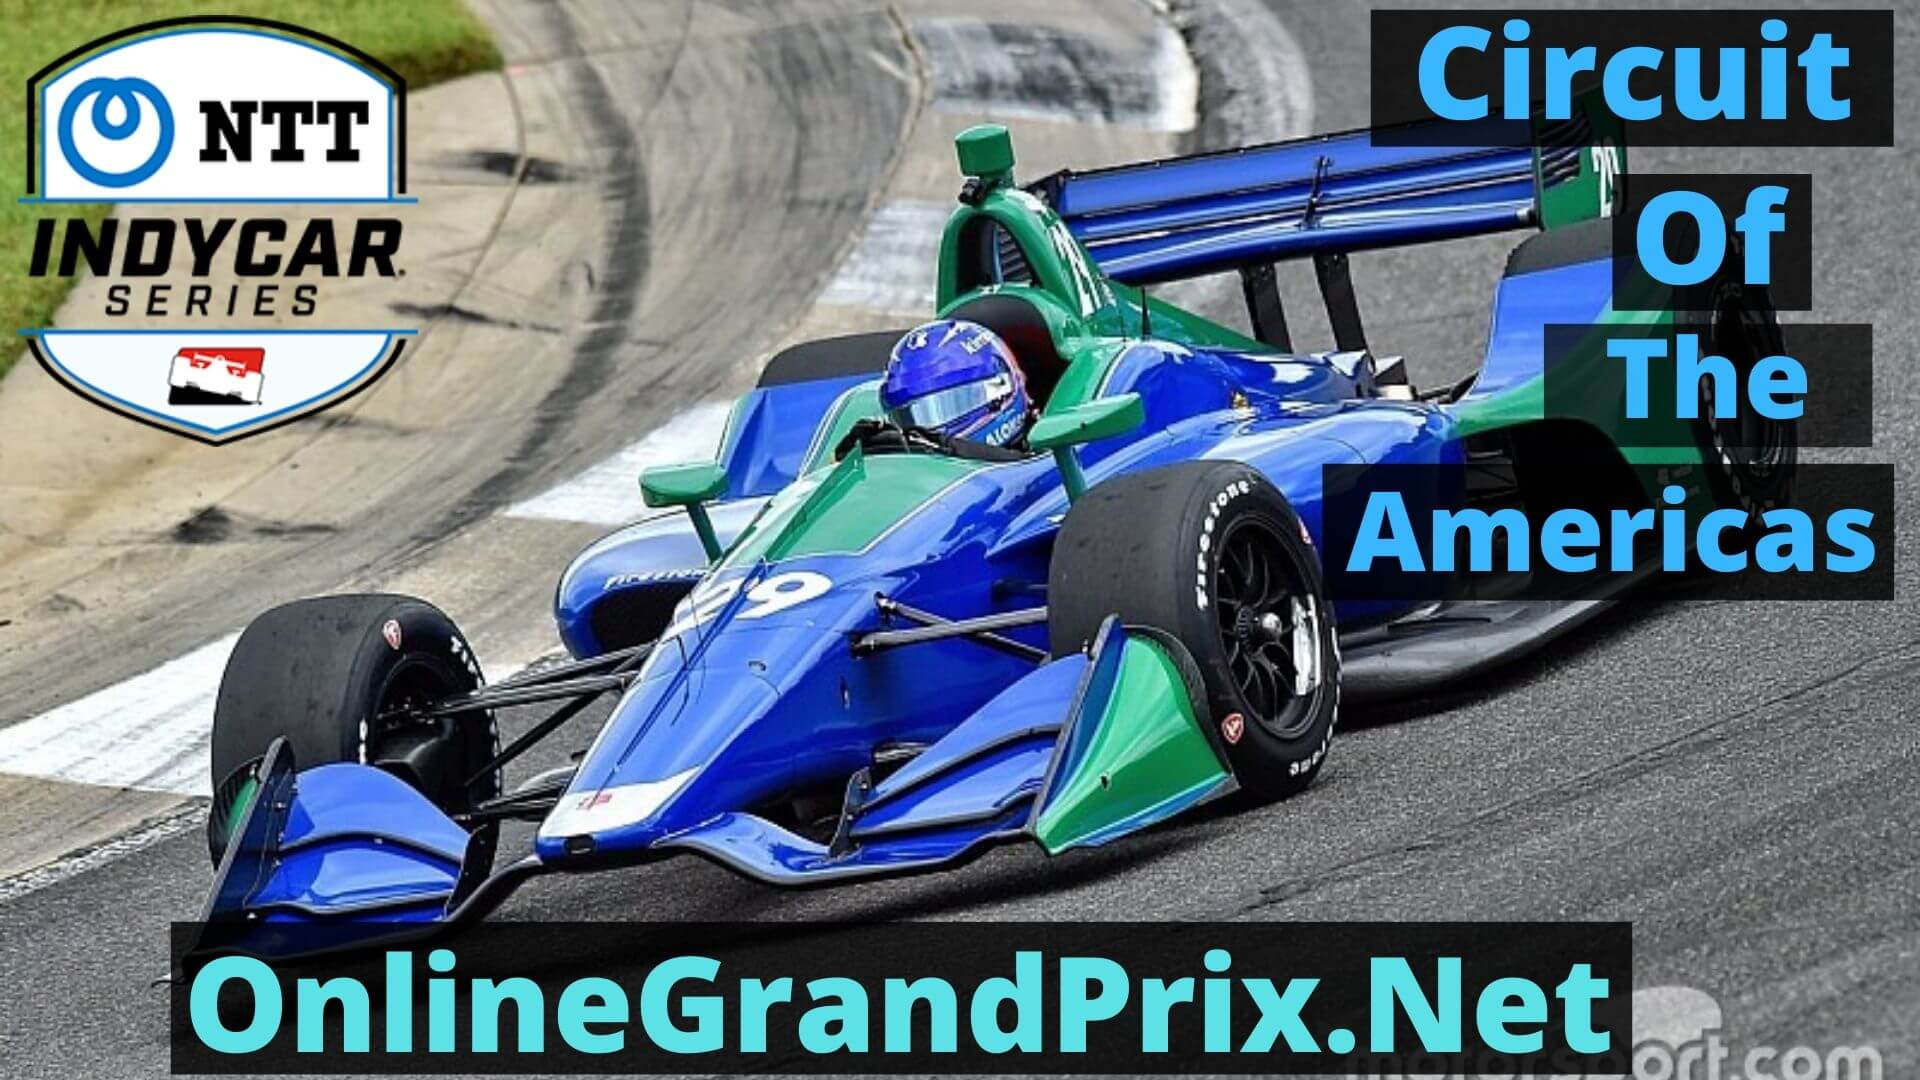 watch-circuit-of-the-americas-online